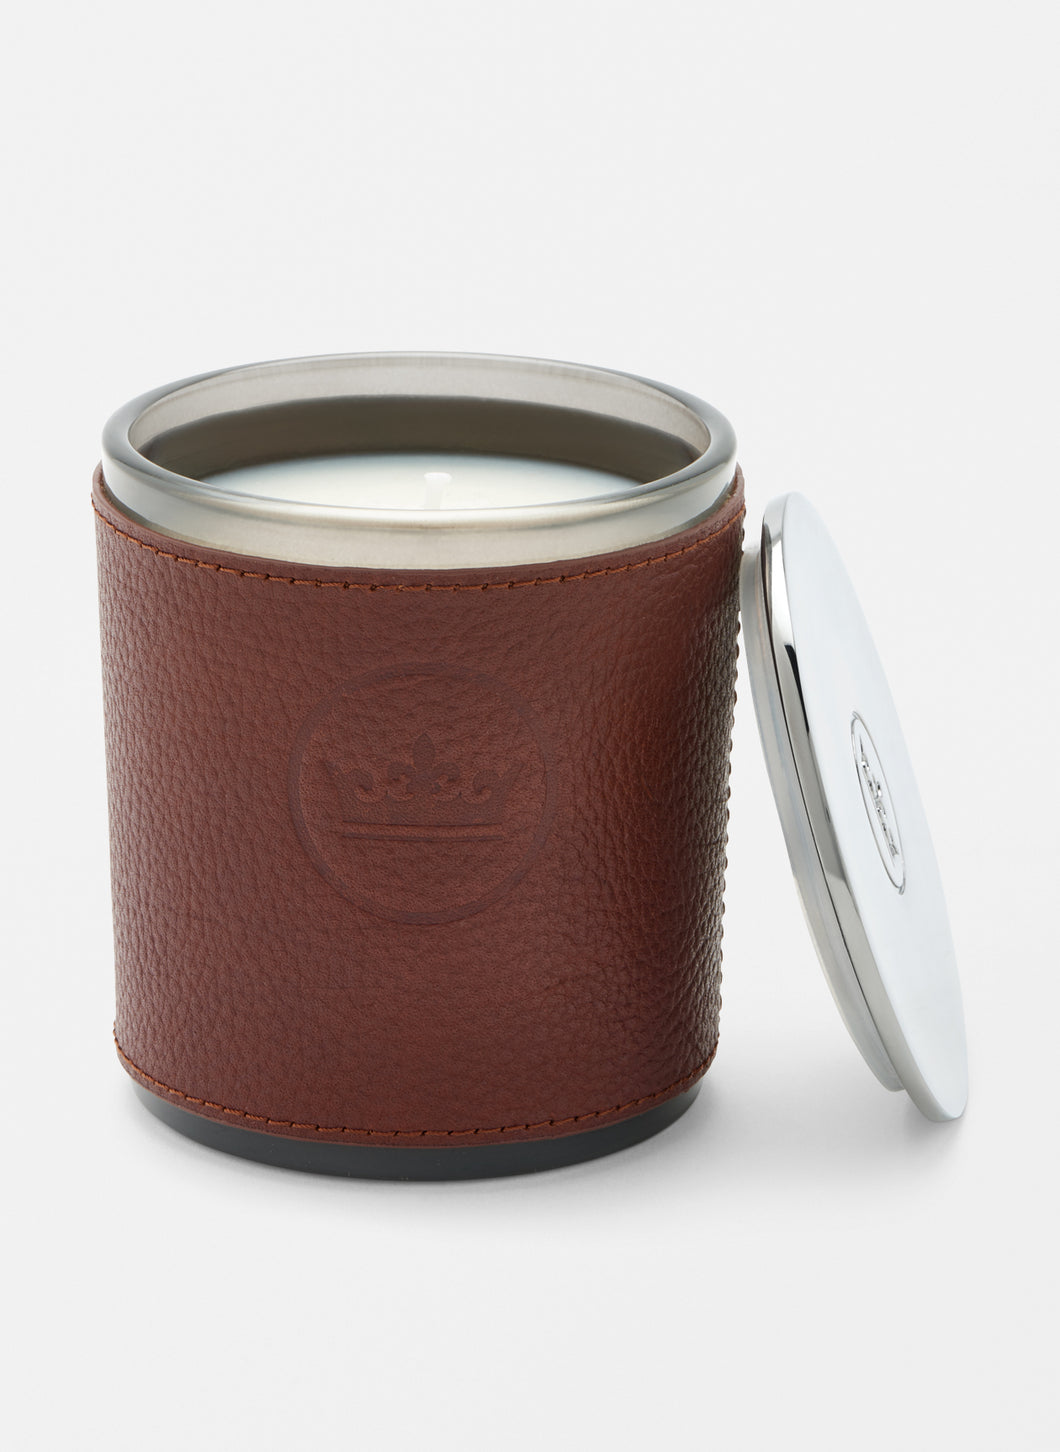 Peter Millar Crown Candle